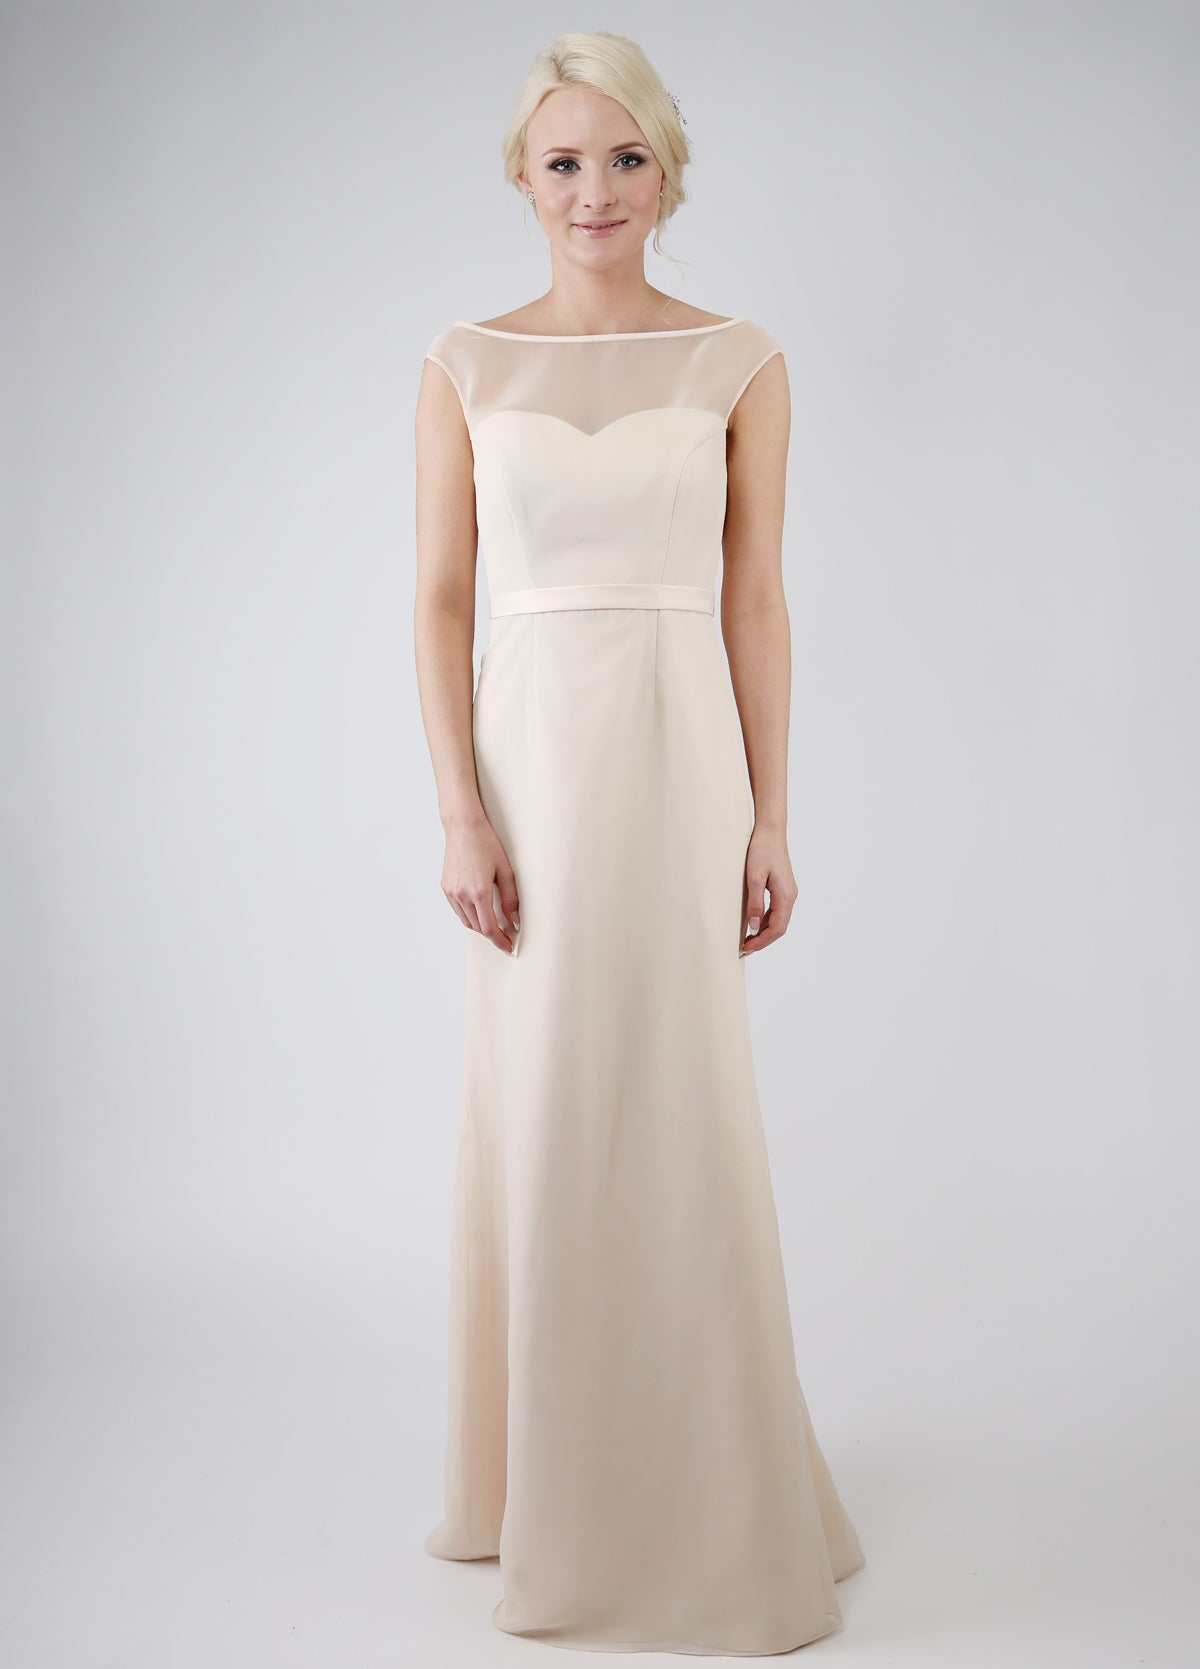 Chiffon gown with illusion bateau neckline